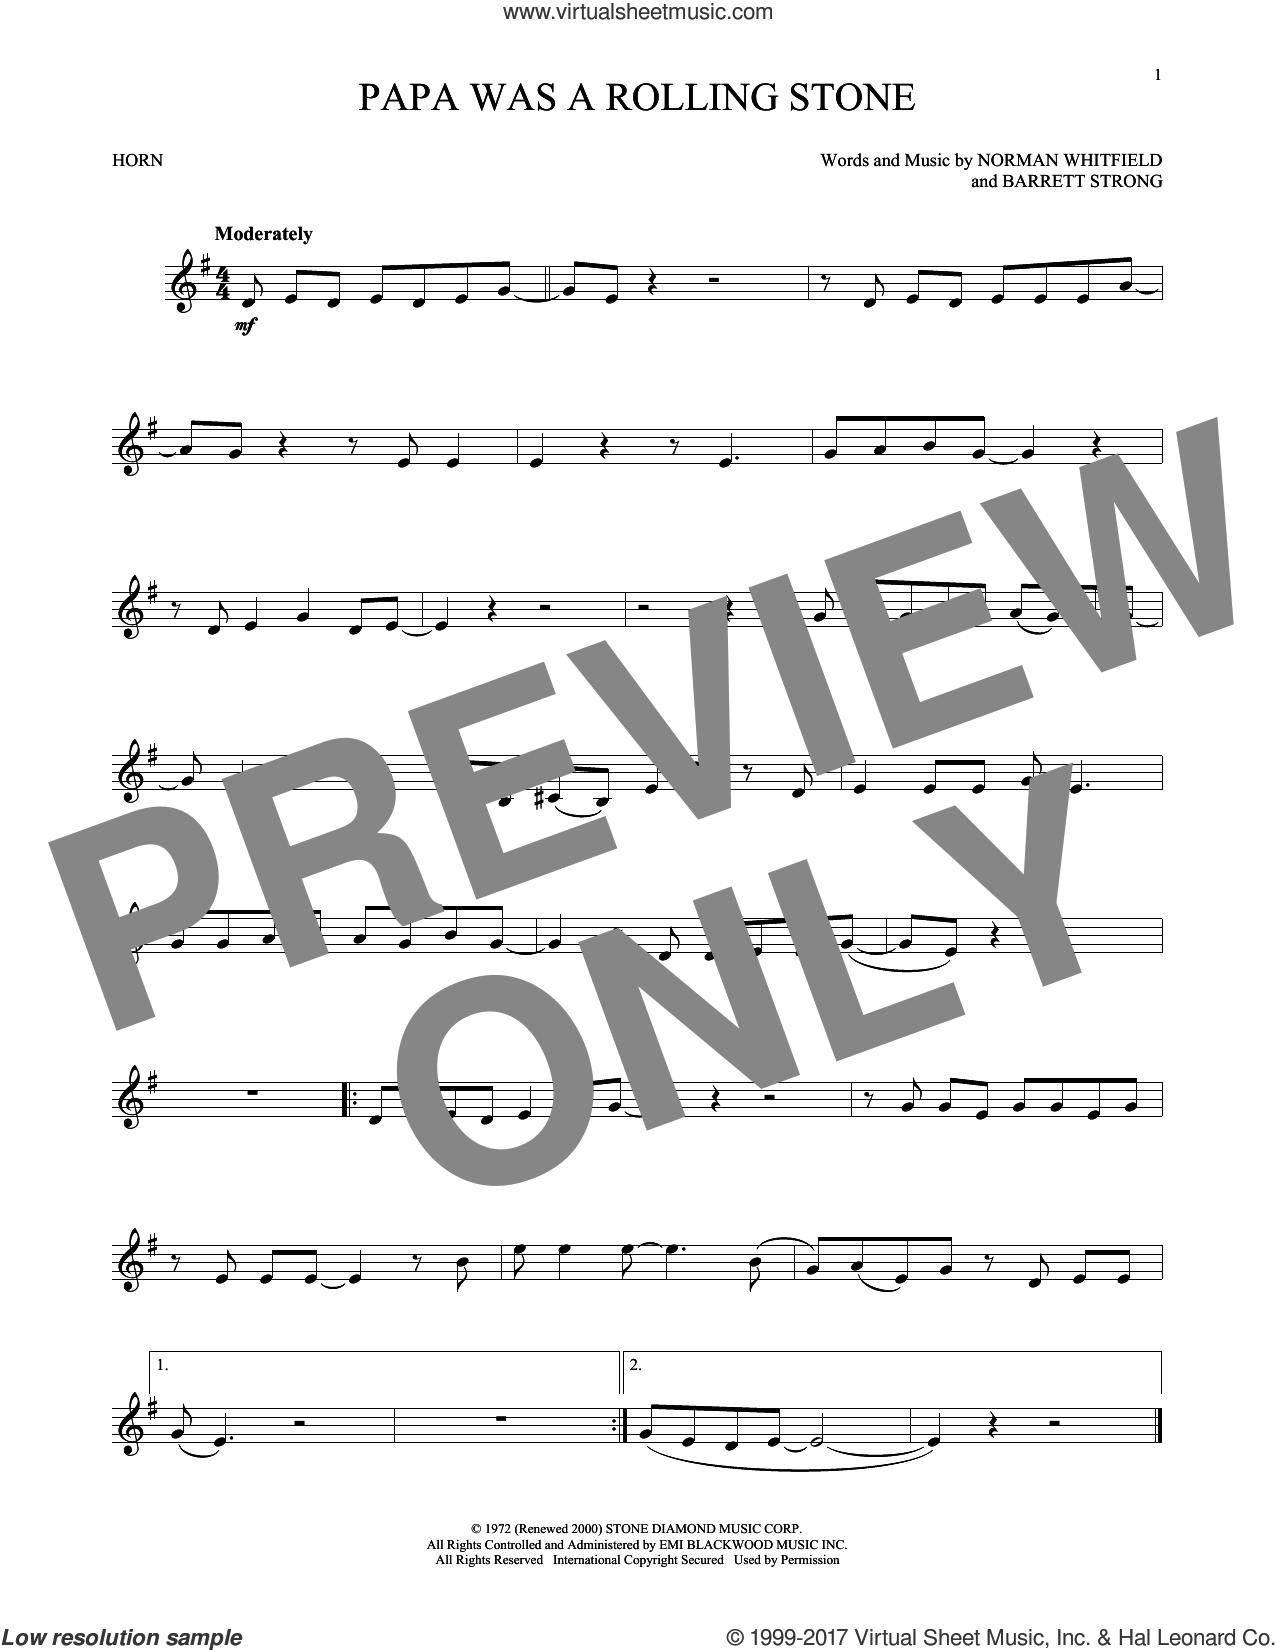 Papa Was A Rollin' Stone sheet music for horn solo by The Temptations, Barrett Strong and Norman Whitfield, intermediate skill level